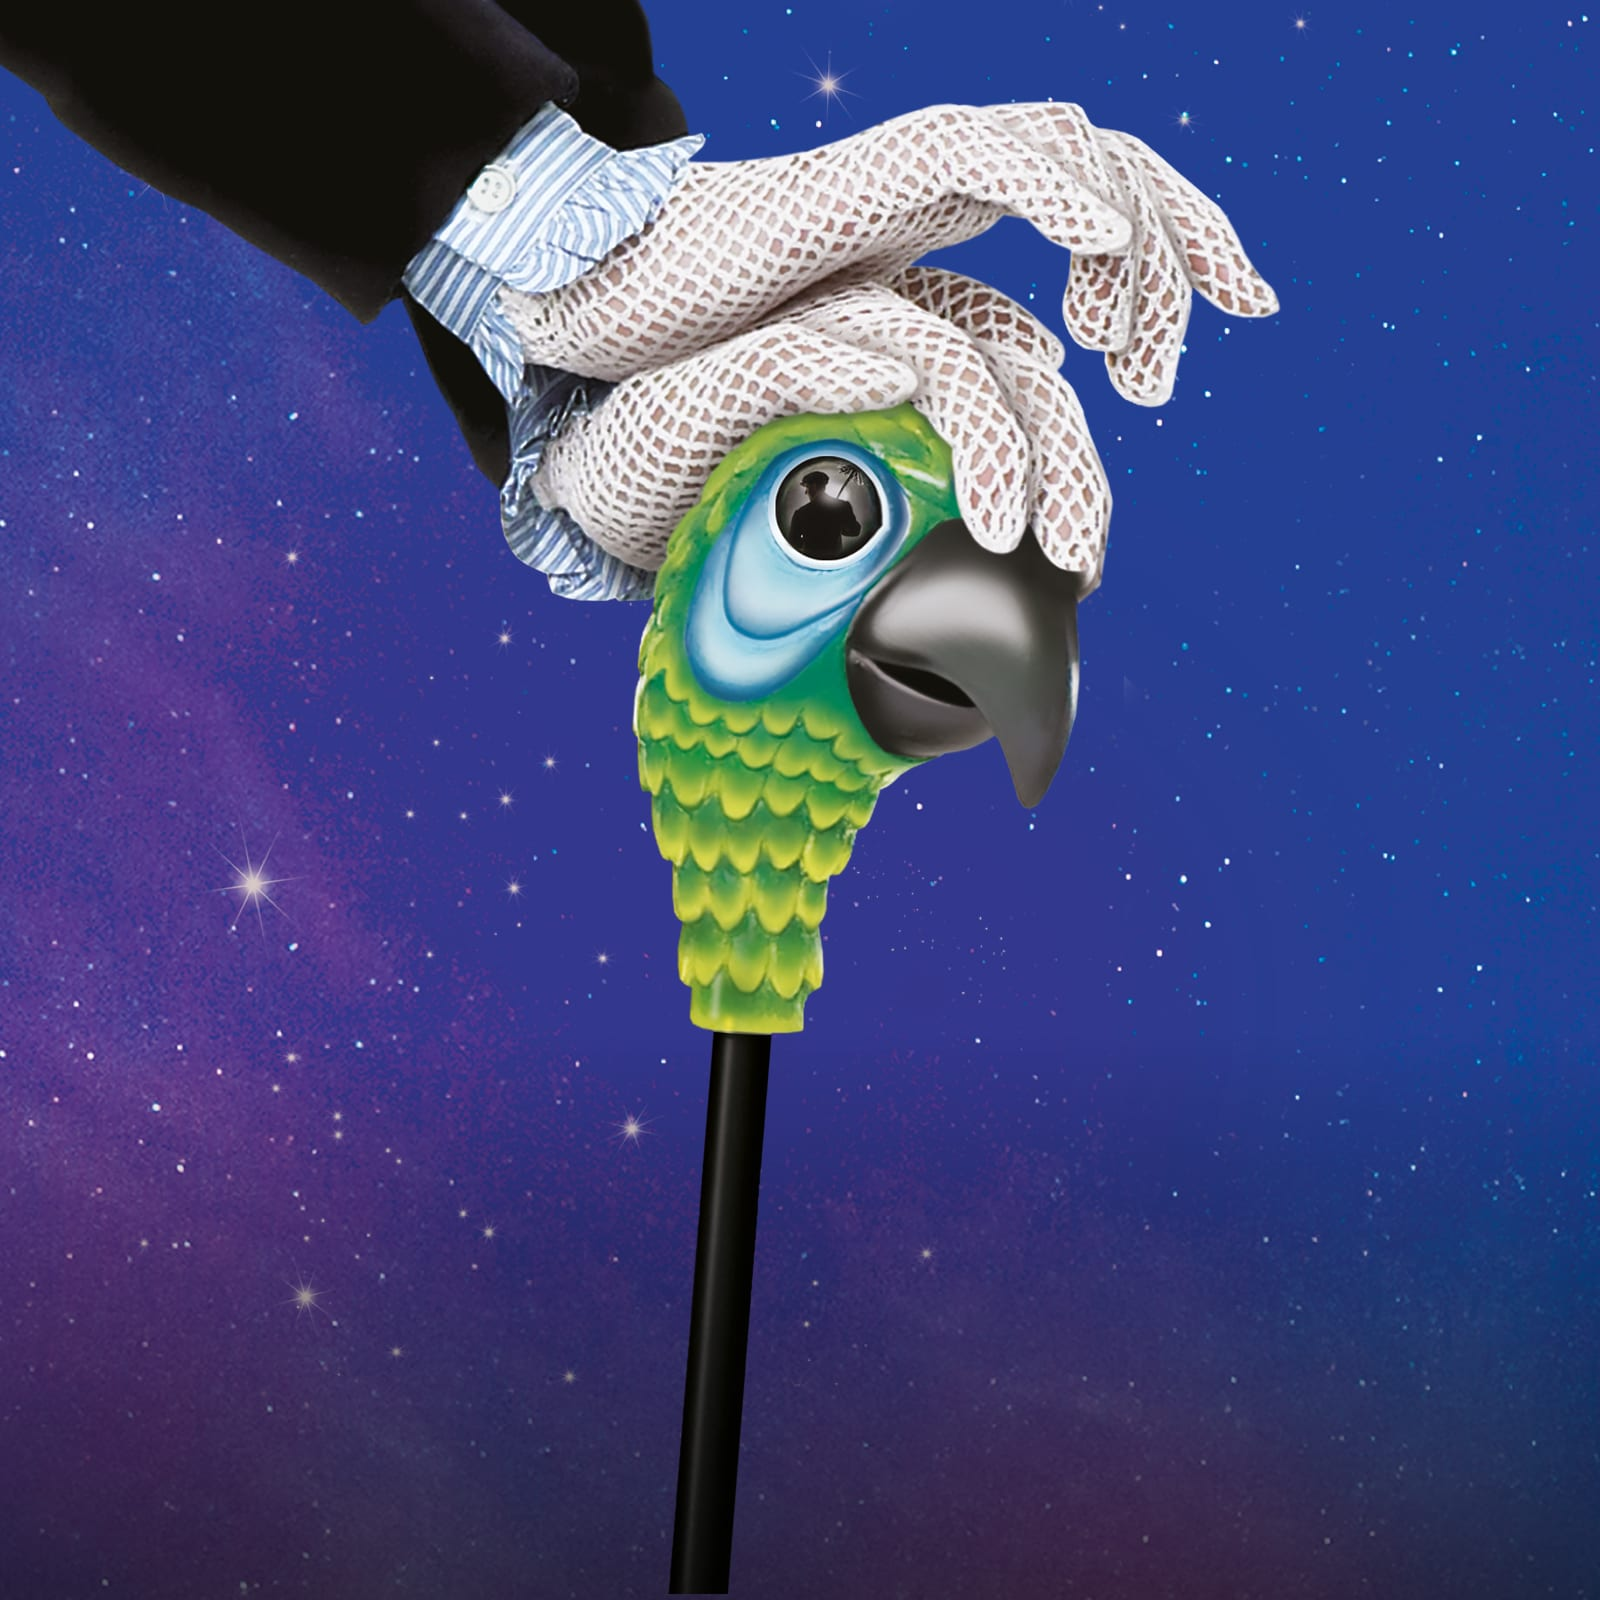 Mary Poppins' gloved hands holding a stick with a green parrot on it